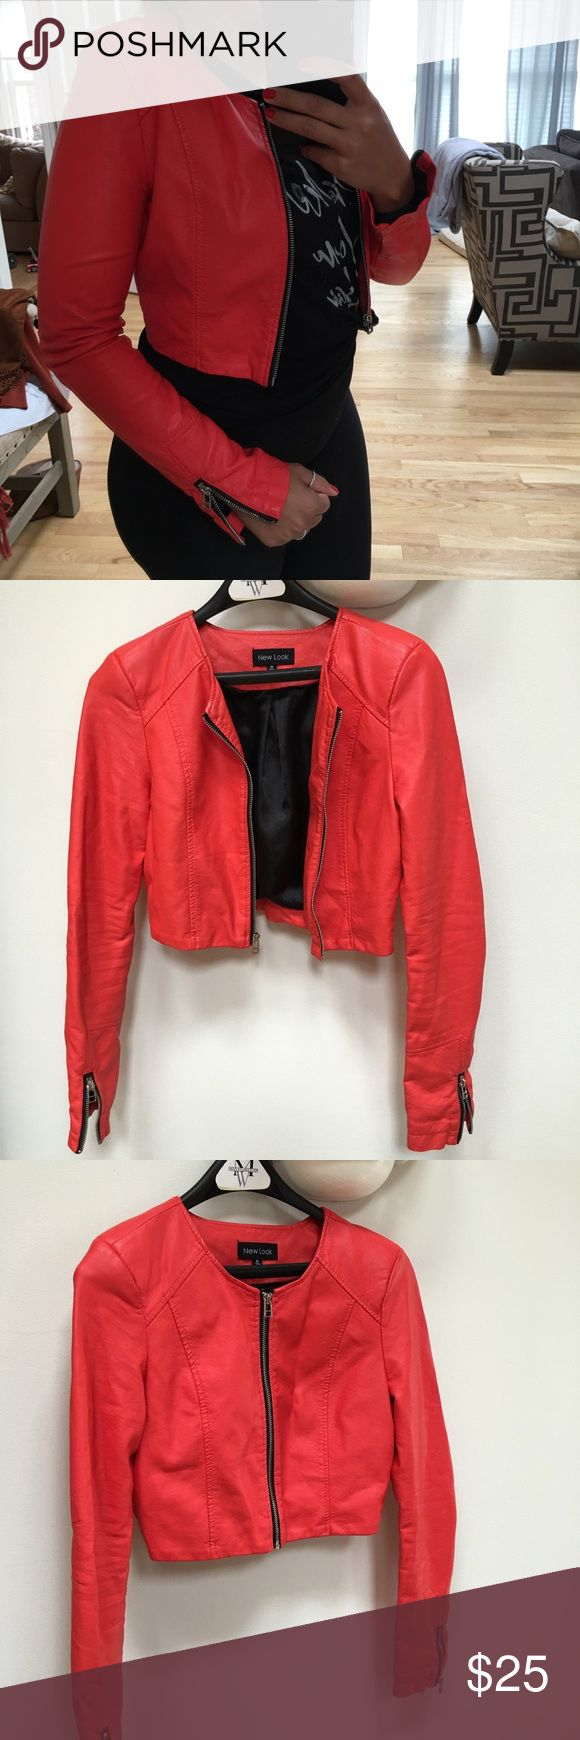 New Look cropped Leather jacket New Look cropped Leather jacket/ EUC- no flaws, faux leather, cropped, red, zipper front and sleeves, size M but fit like a small. New Look Jackets & Coats